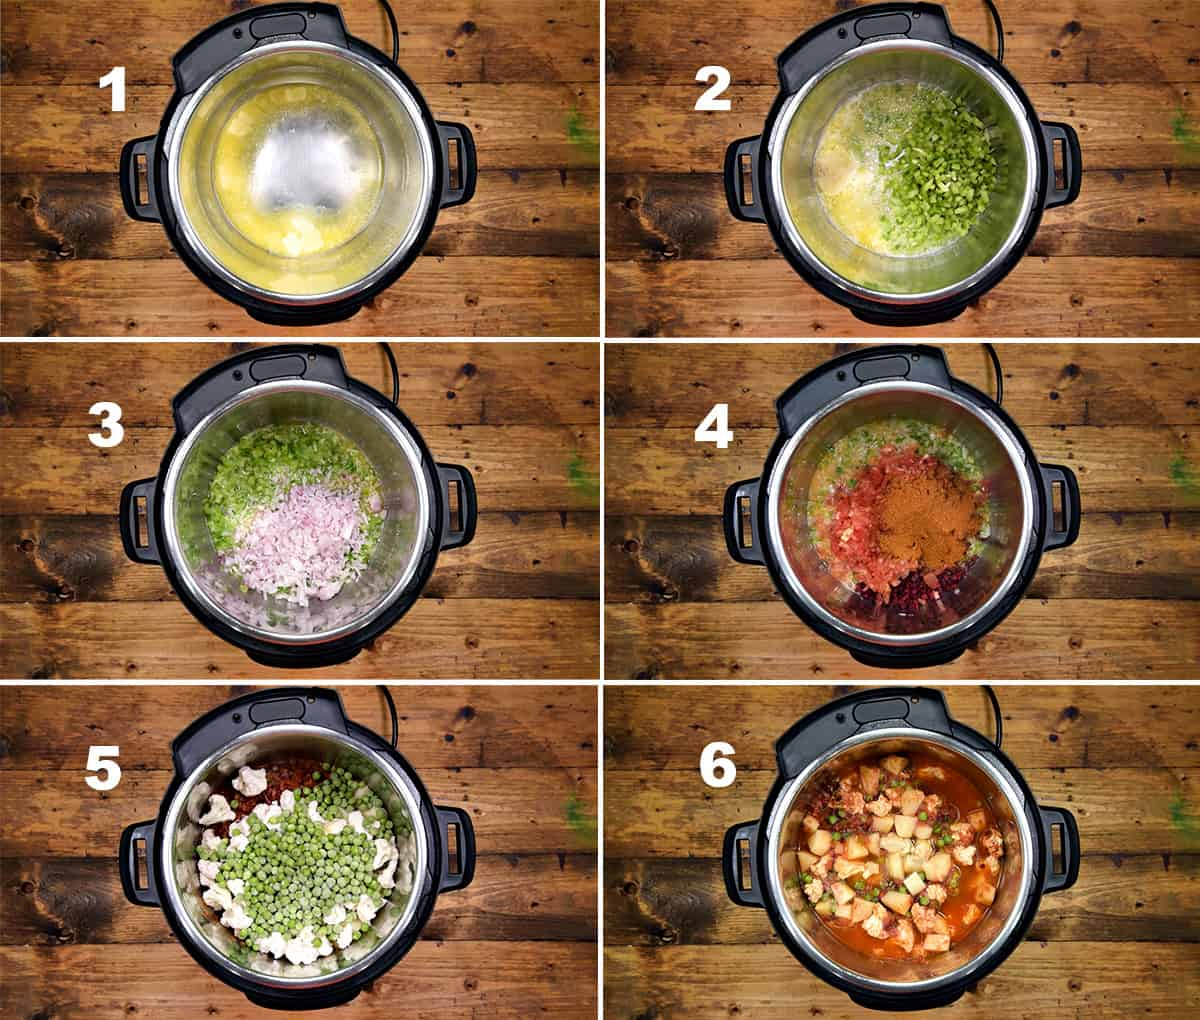 Step by step picture collage showing how to make bhaji in the Instant Pot.